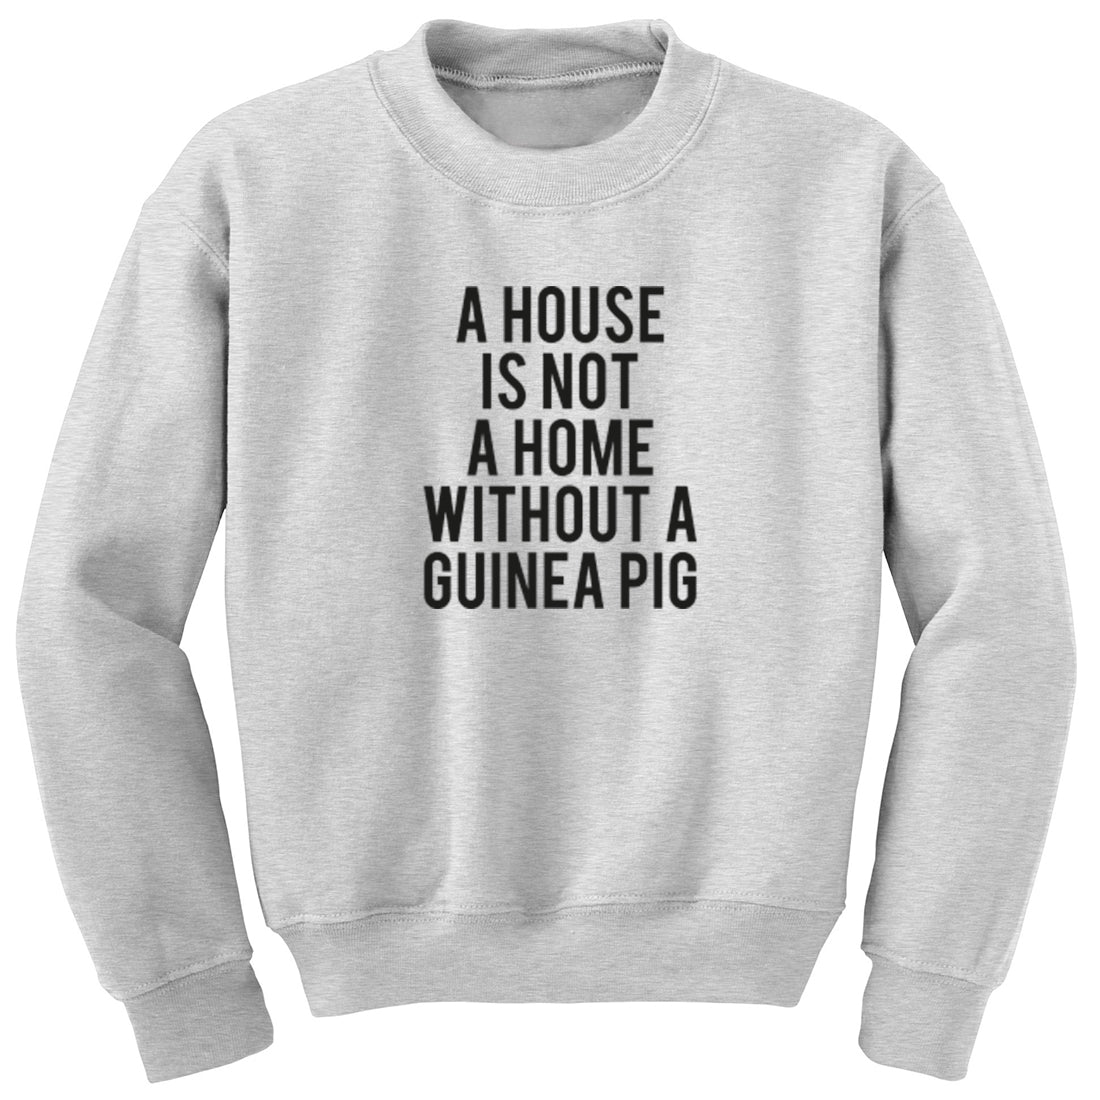 A House Is Not A Home Without A Guinea Pig Unisex Jumper K1851